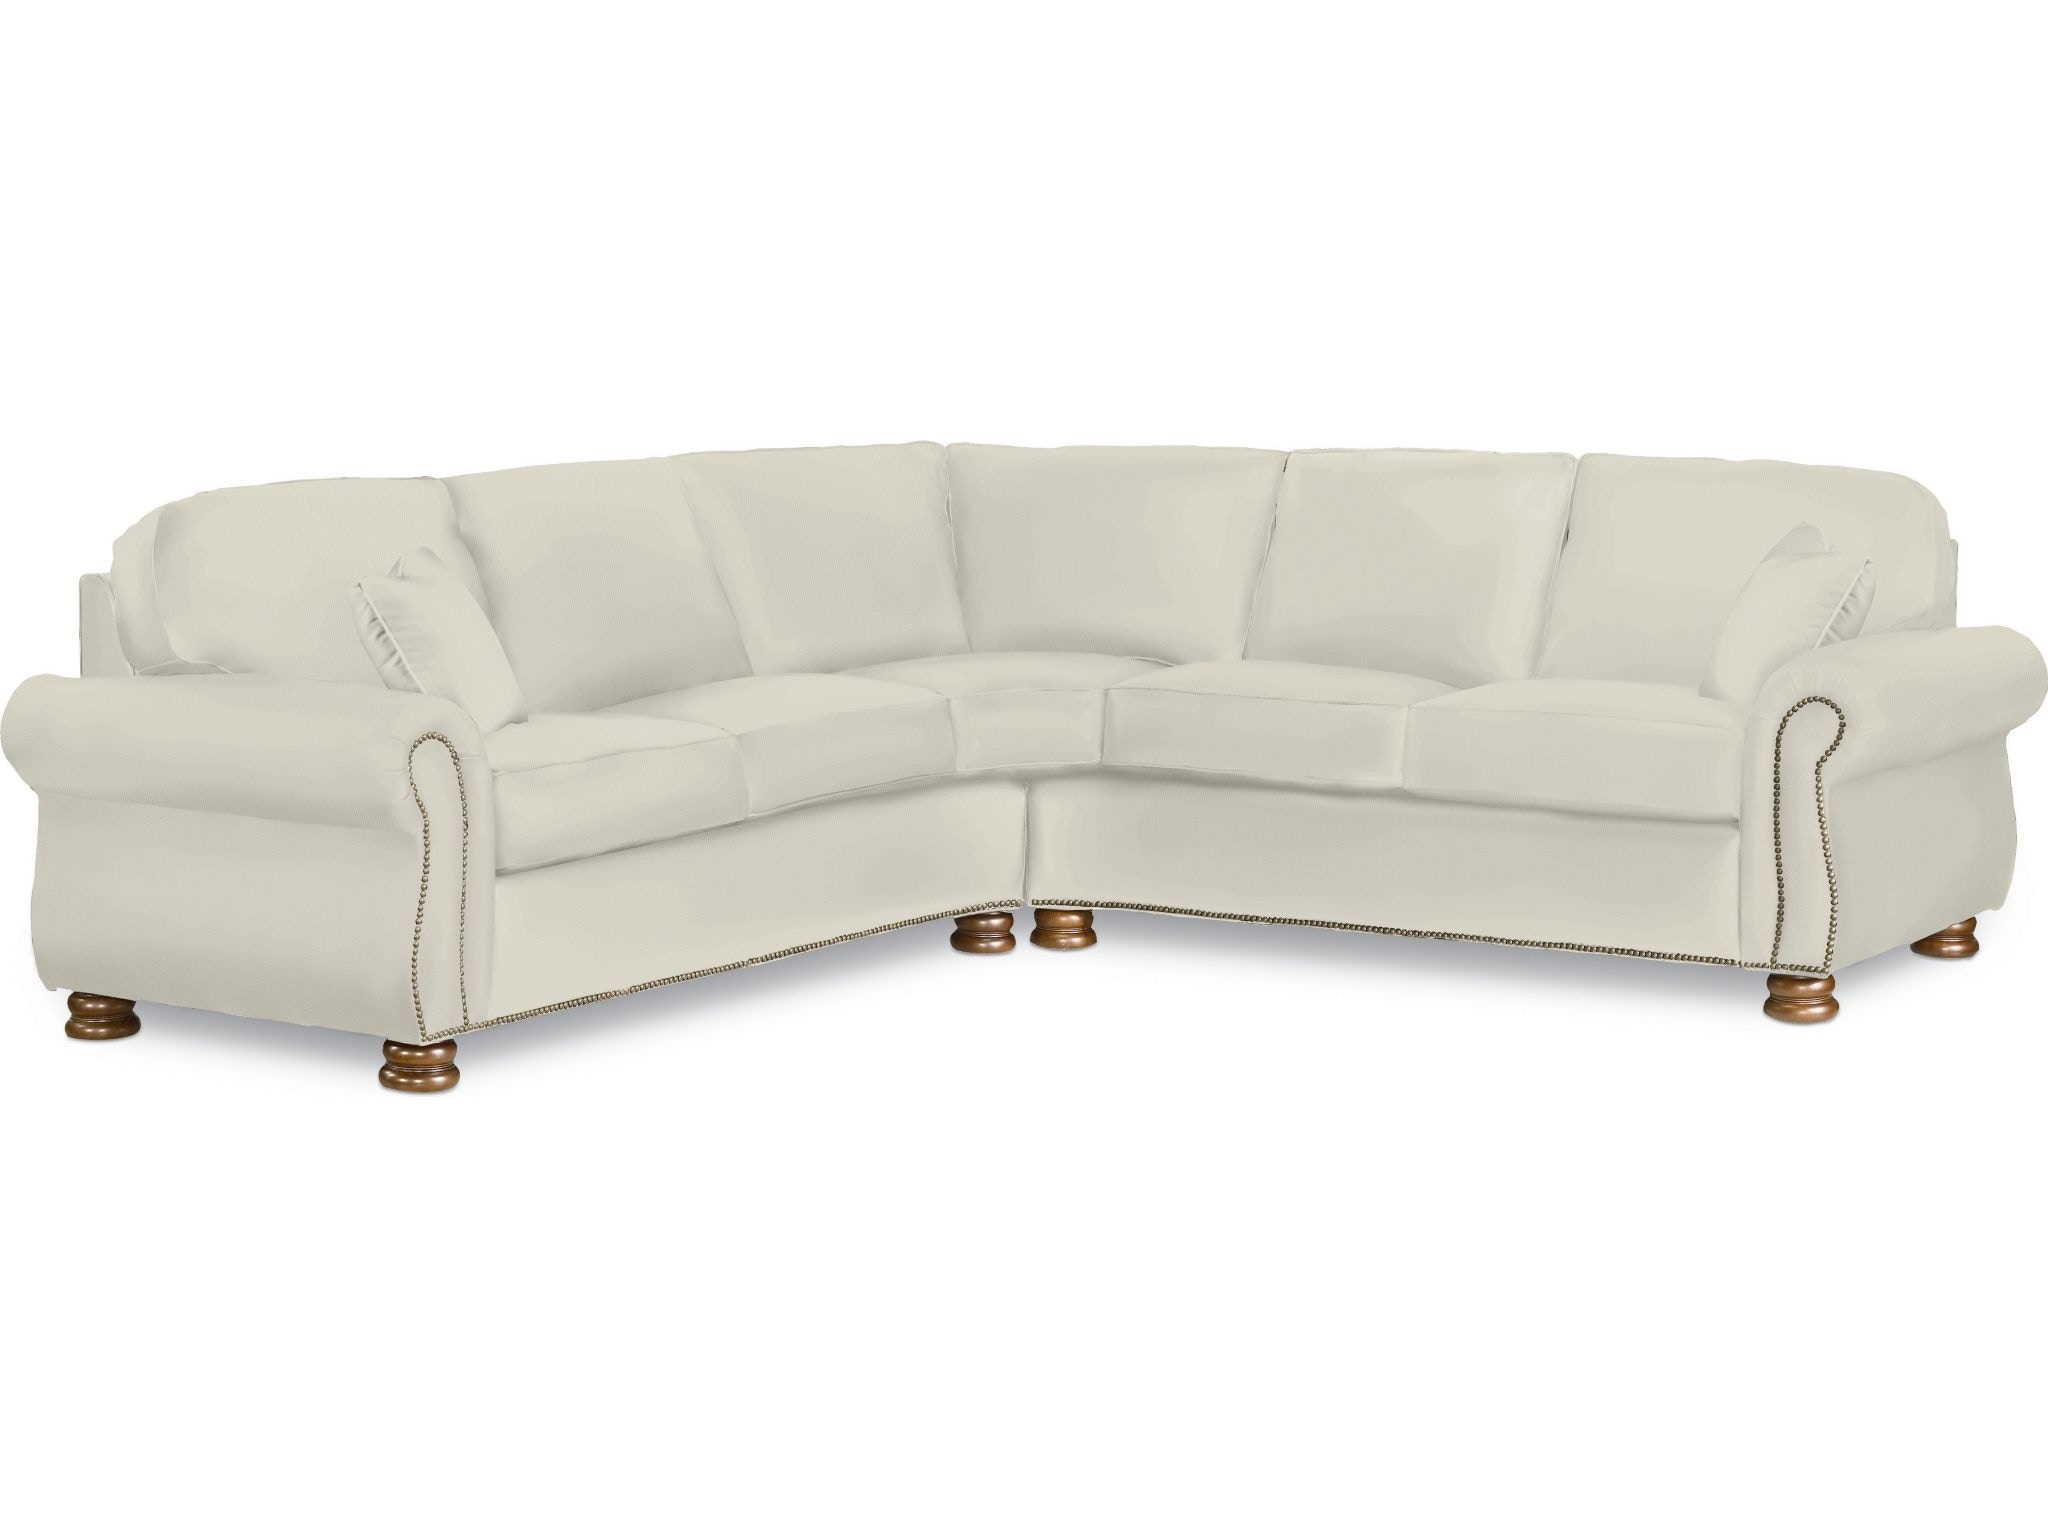 thomasville benjamin sofa arm covers living room sectional 1462 sect